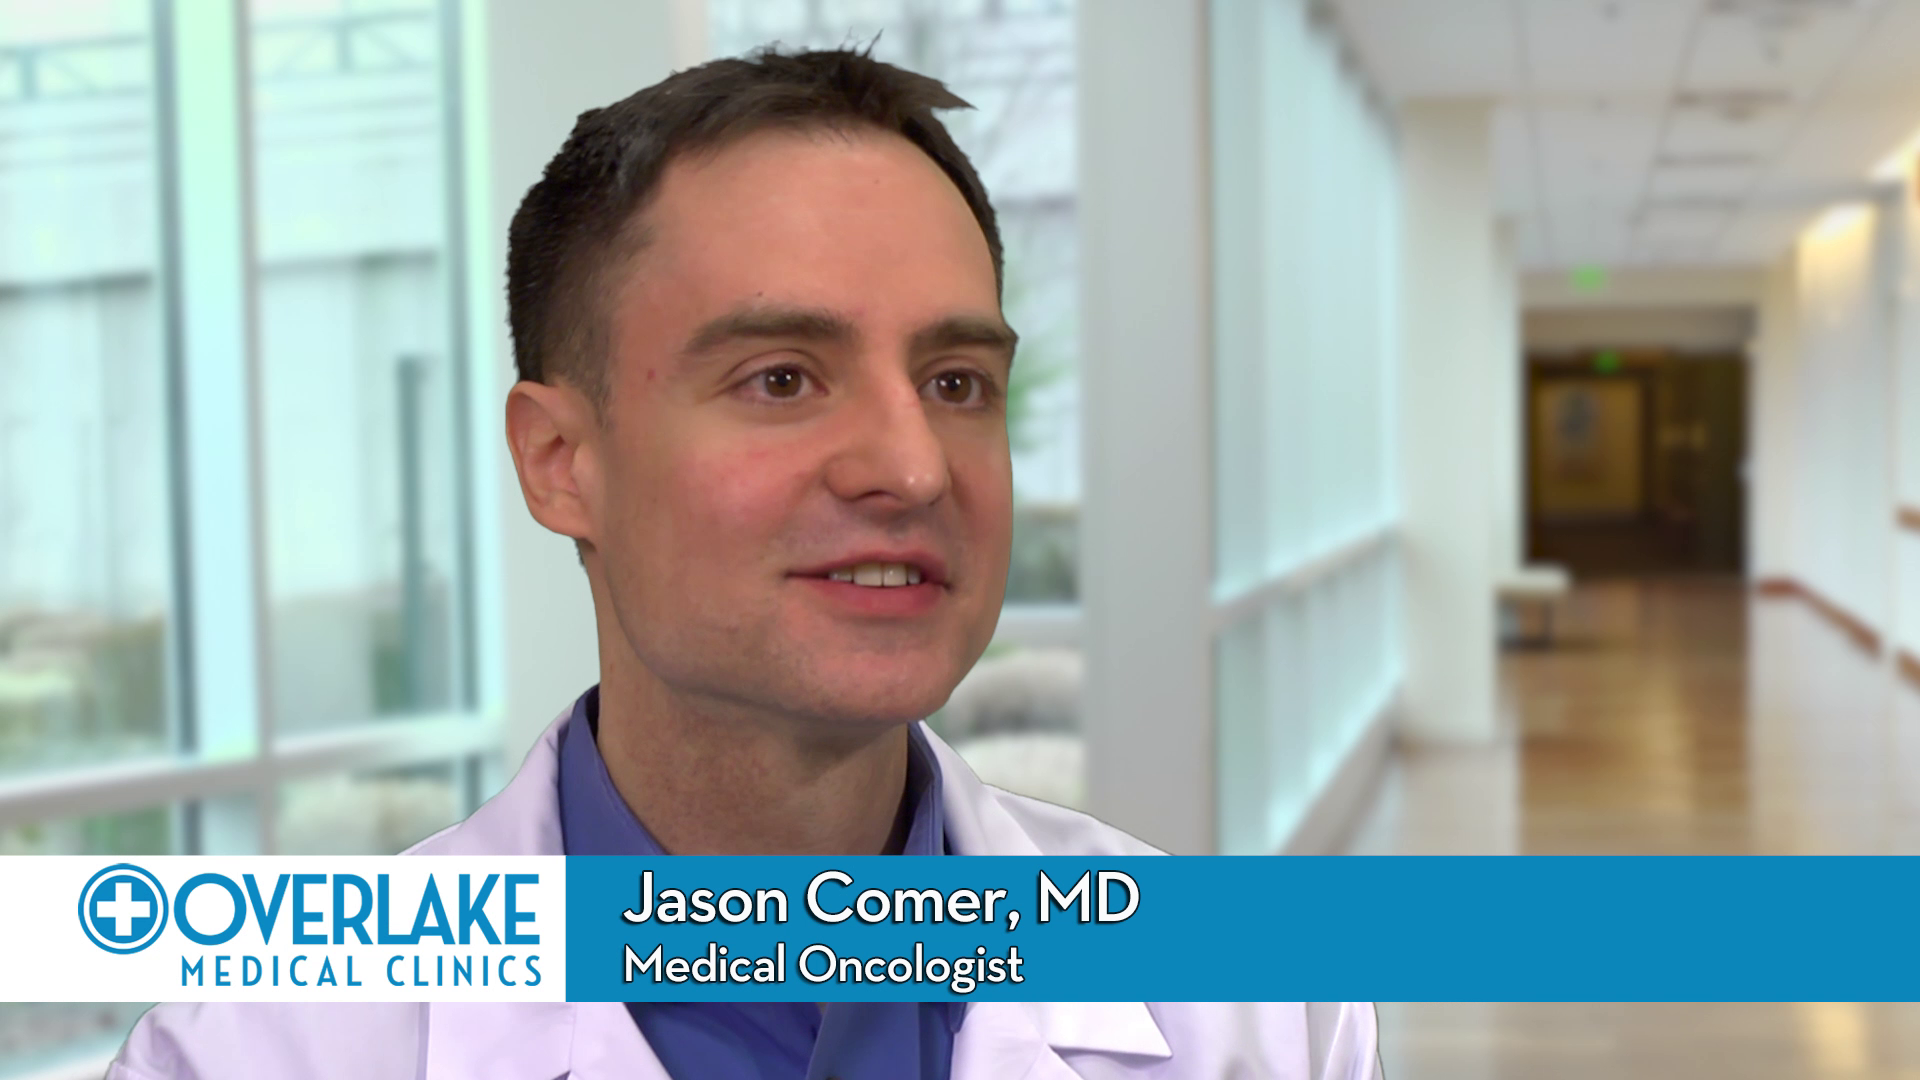 Dr. Comer talks about his practice